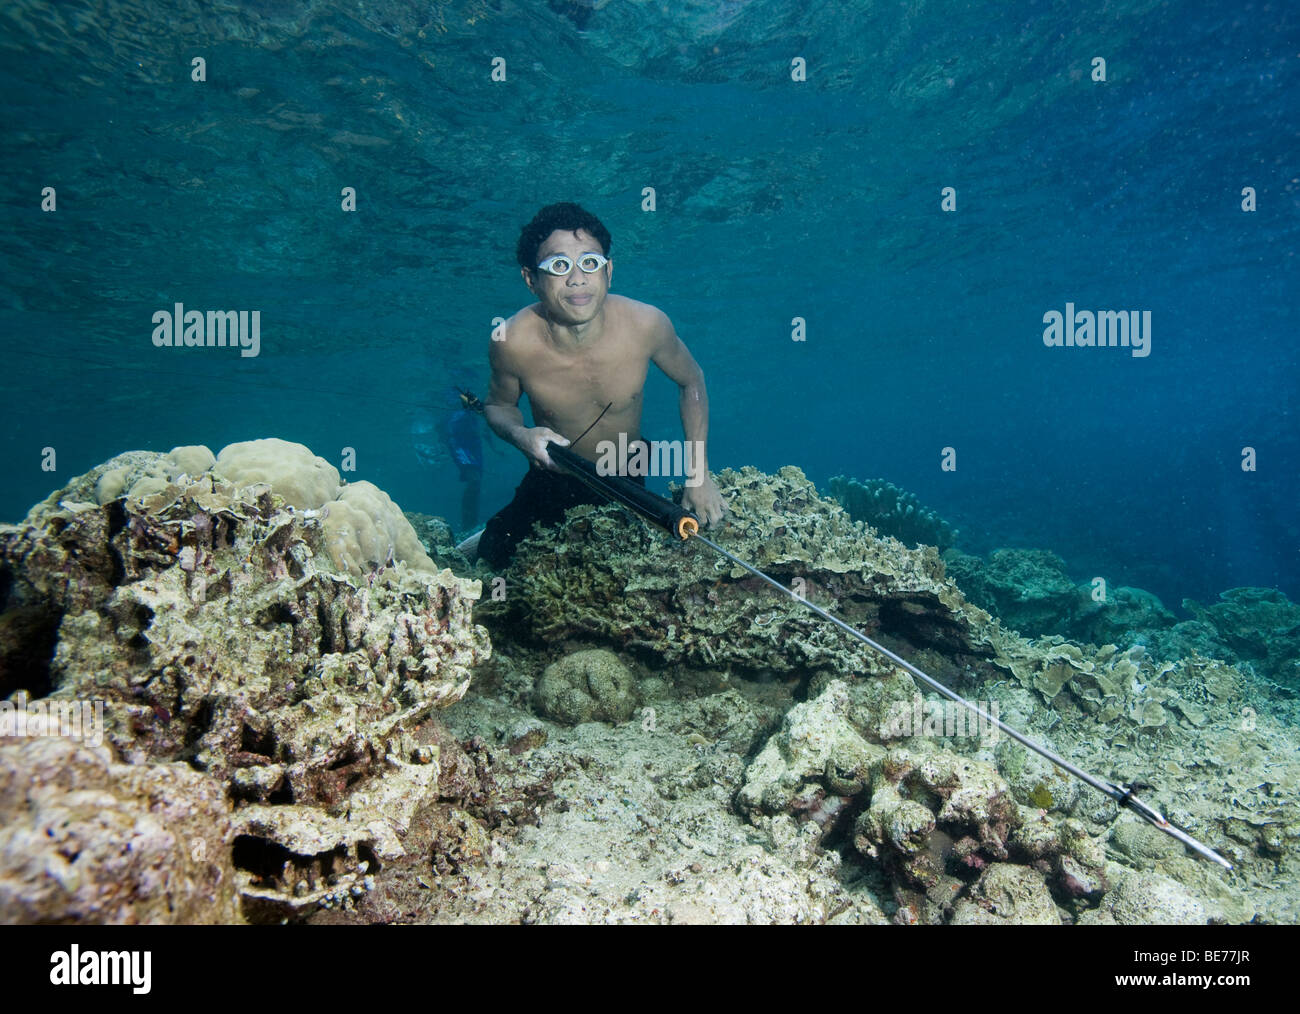 Fisherman hunting fish with a primitive harpoon in the Bunaken National Park, Indonesia, Southeast Asia - Stock Image